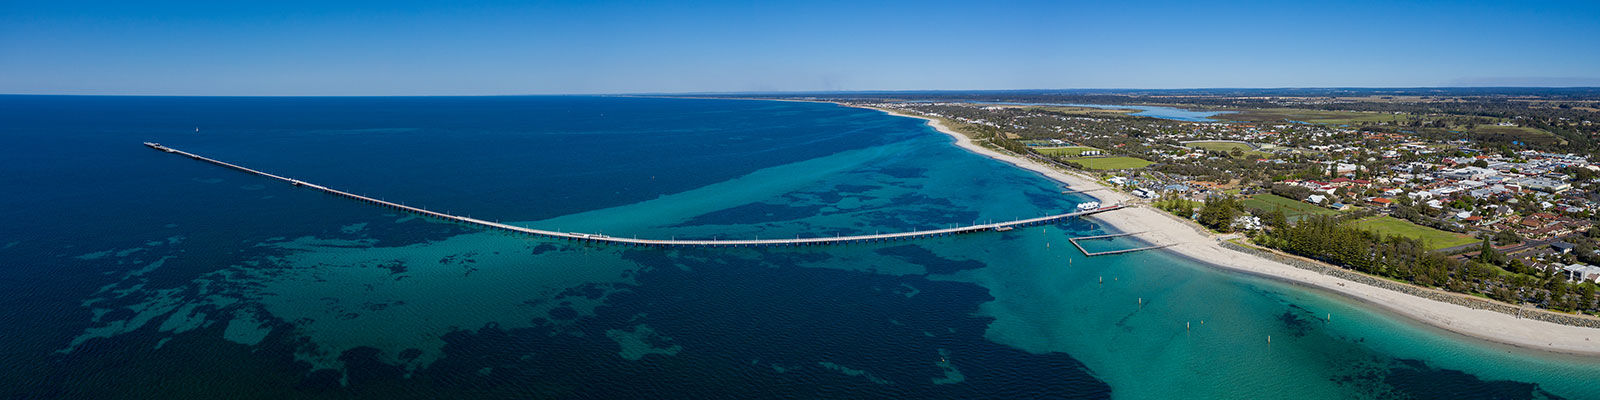 my-boating-life-Panoramic-aerial-view-of-Busselton-pier,-the-worlds-longest-wooden-structure;-Busselton-is-220km-south-west-of-Perth-in-Western-Australia